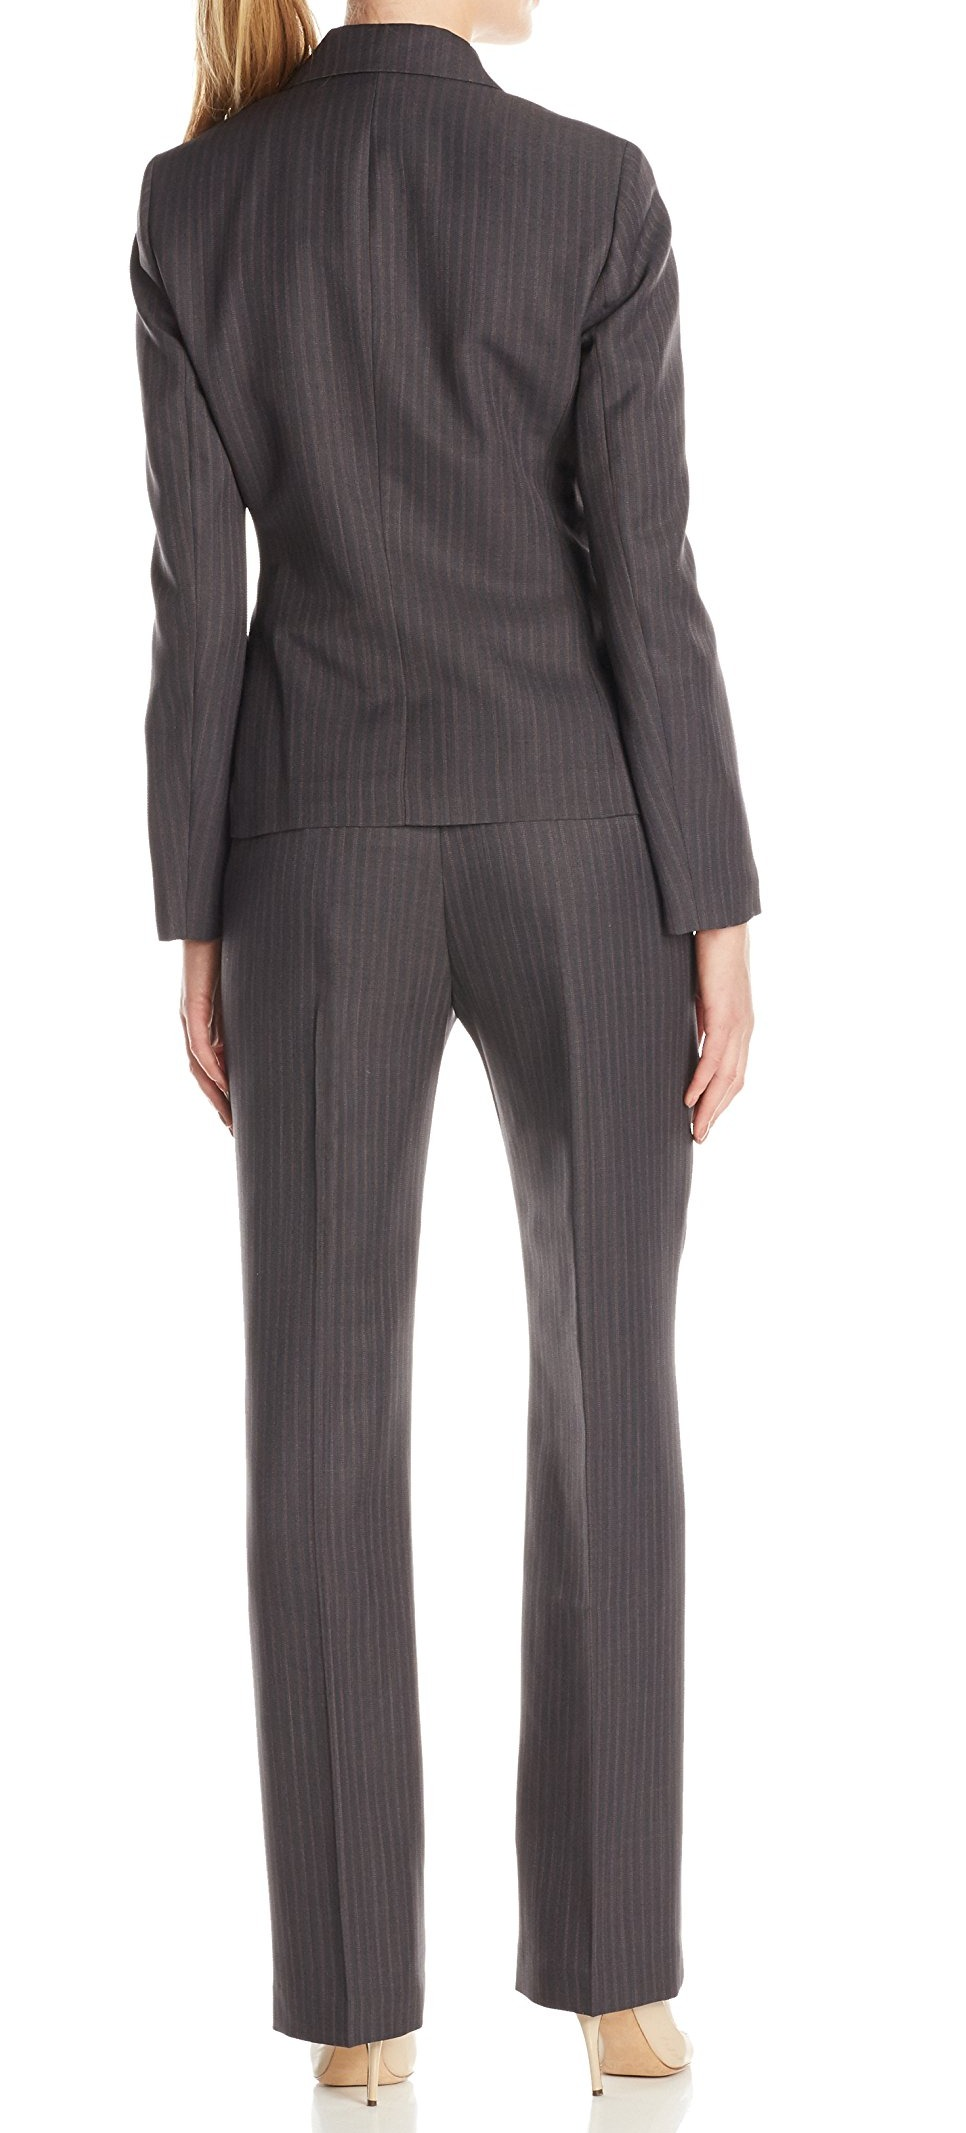 Le Suit New Gray Womens Size 18 Plus Two Button Pinstripe